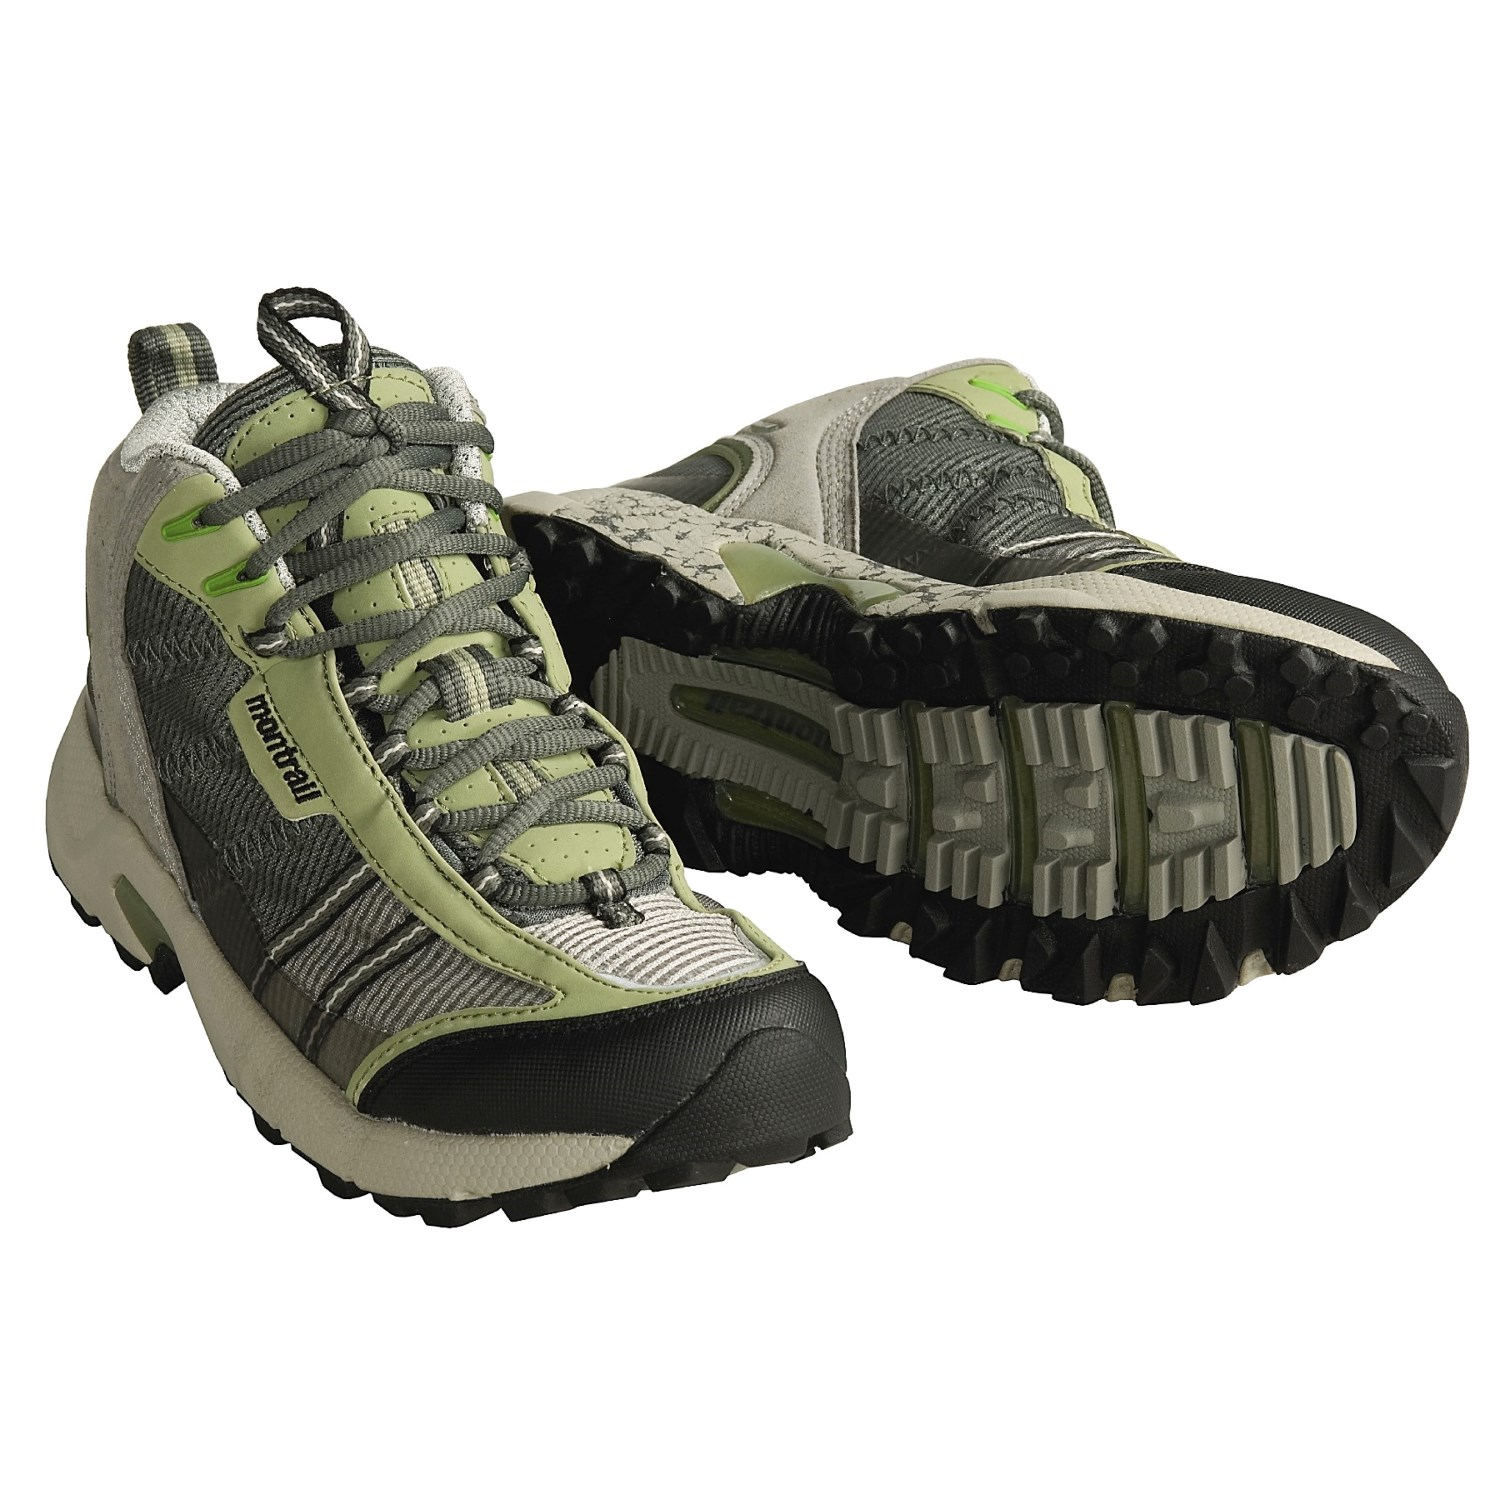 RAX micro Outdoor lightweight breathable hiking shoes and quick passage upstream shoes for men women outdoor